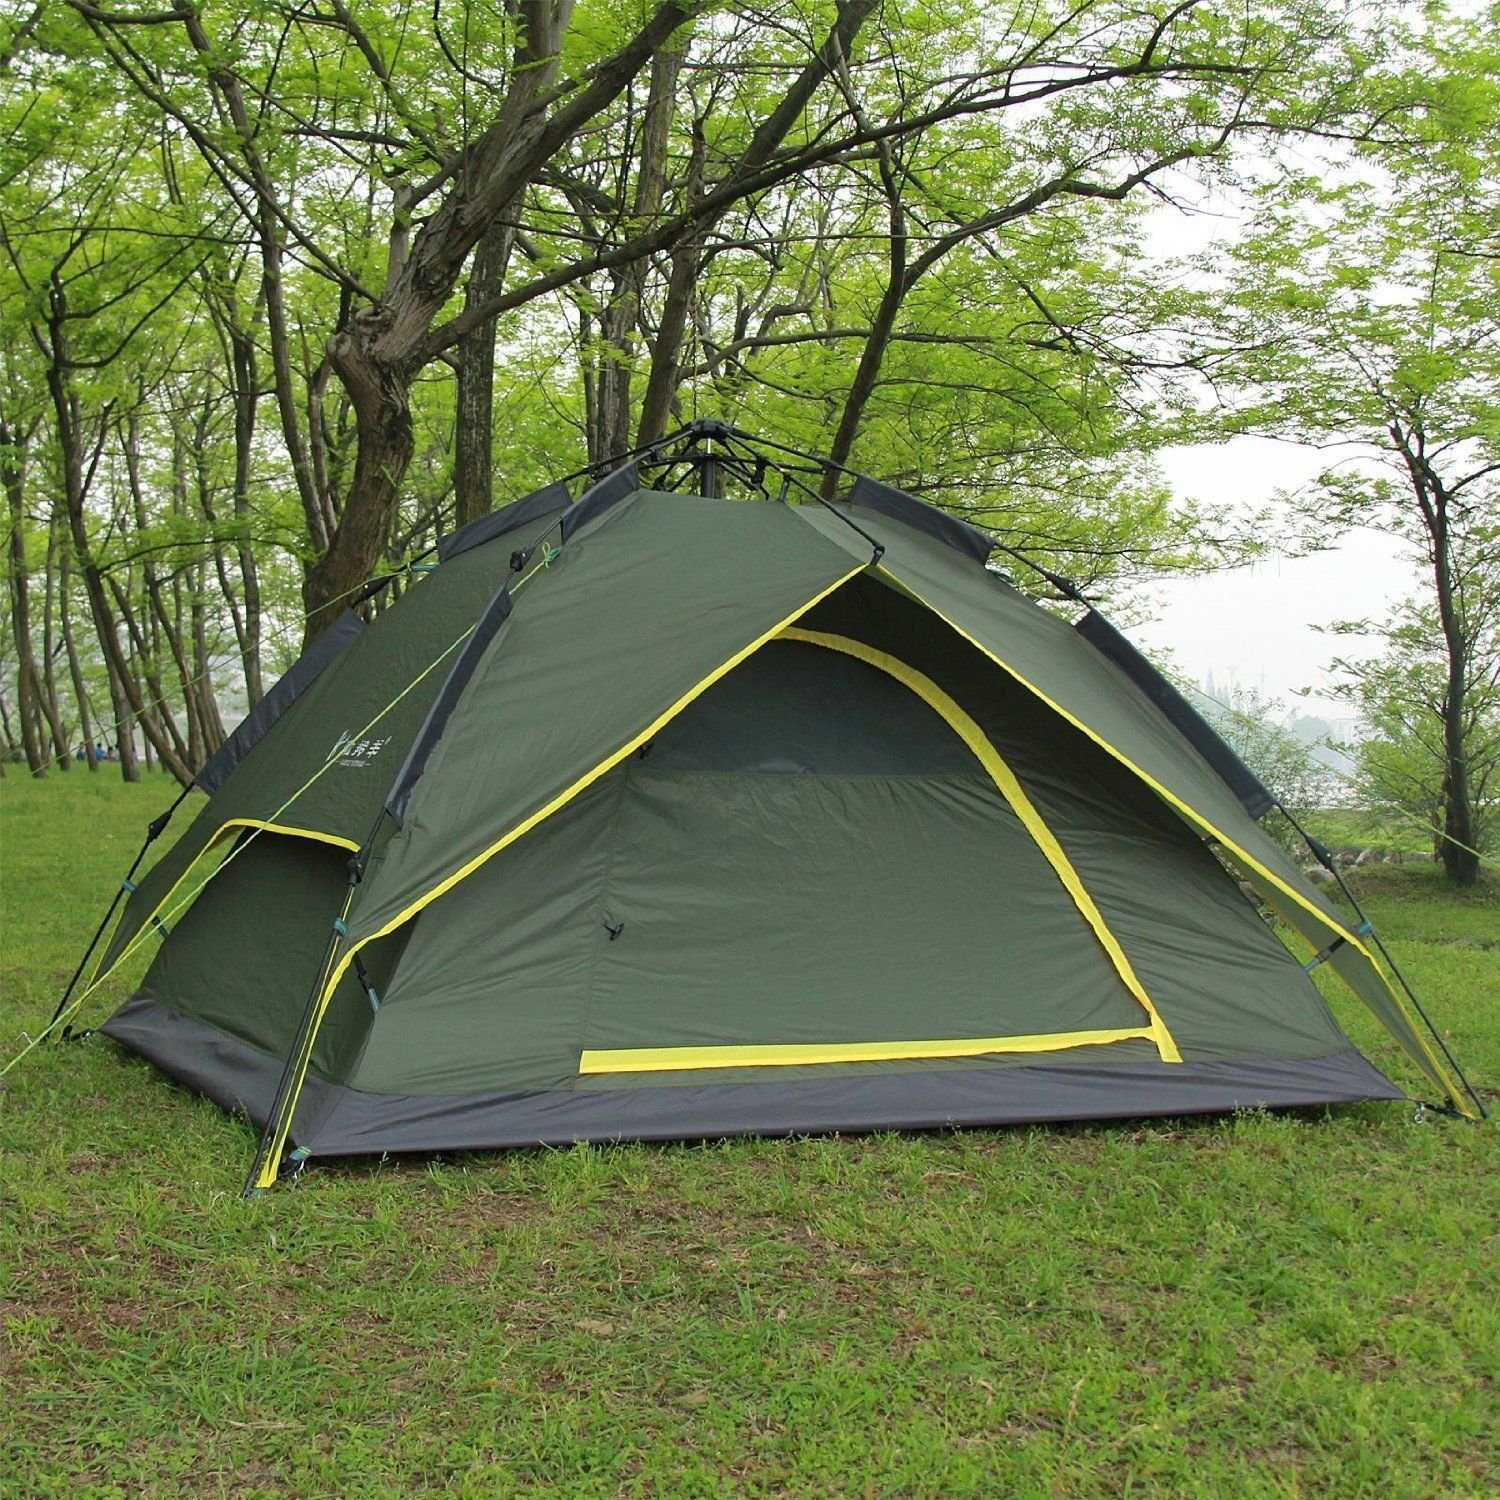 Automatic Outdoor 2 Person Double Layer Instant Camping Family Tent Waterproof by instant pop up tent   B00P5RS6AY